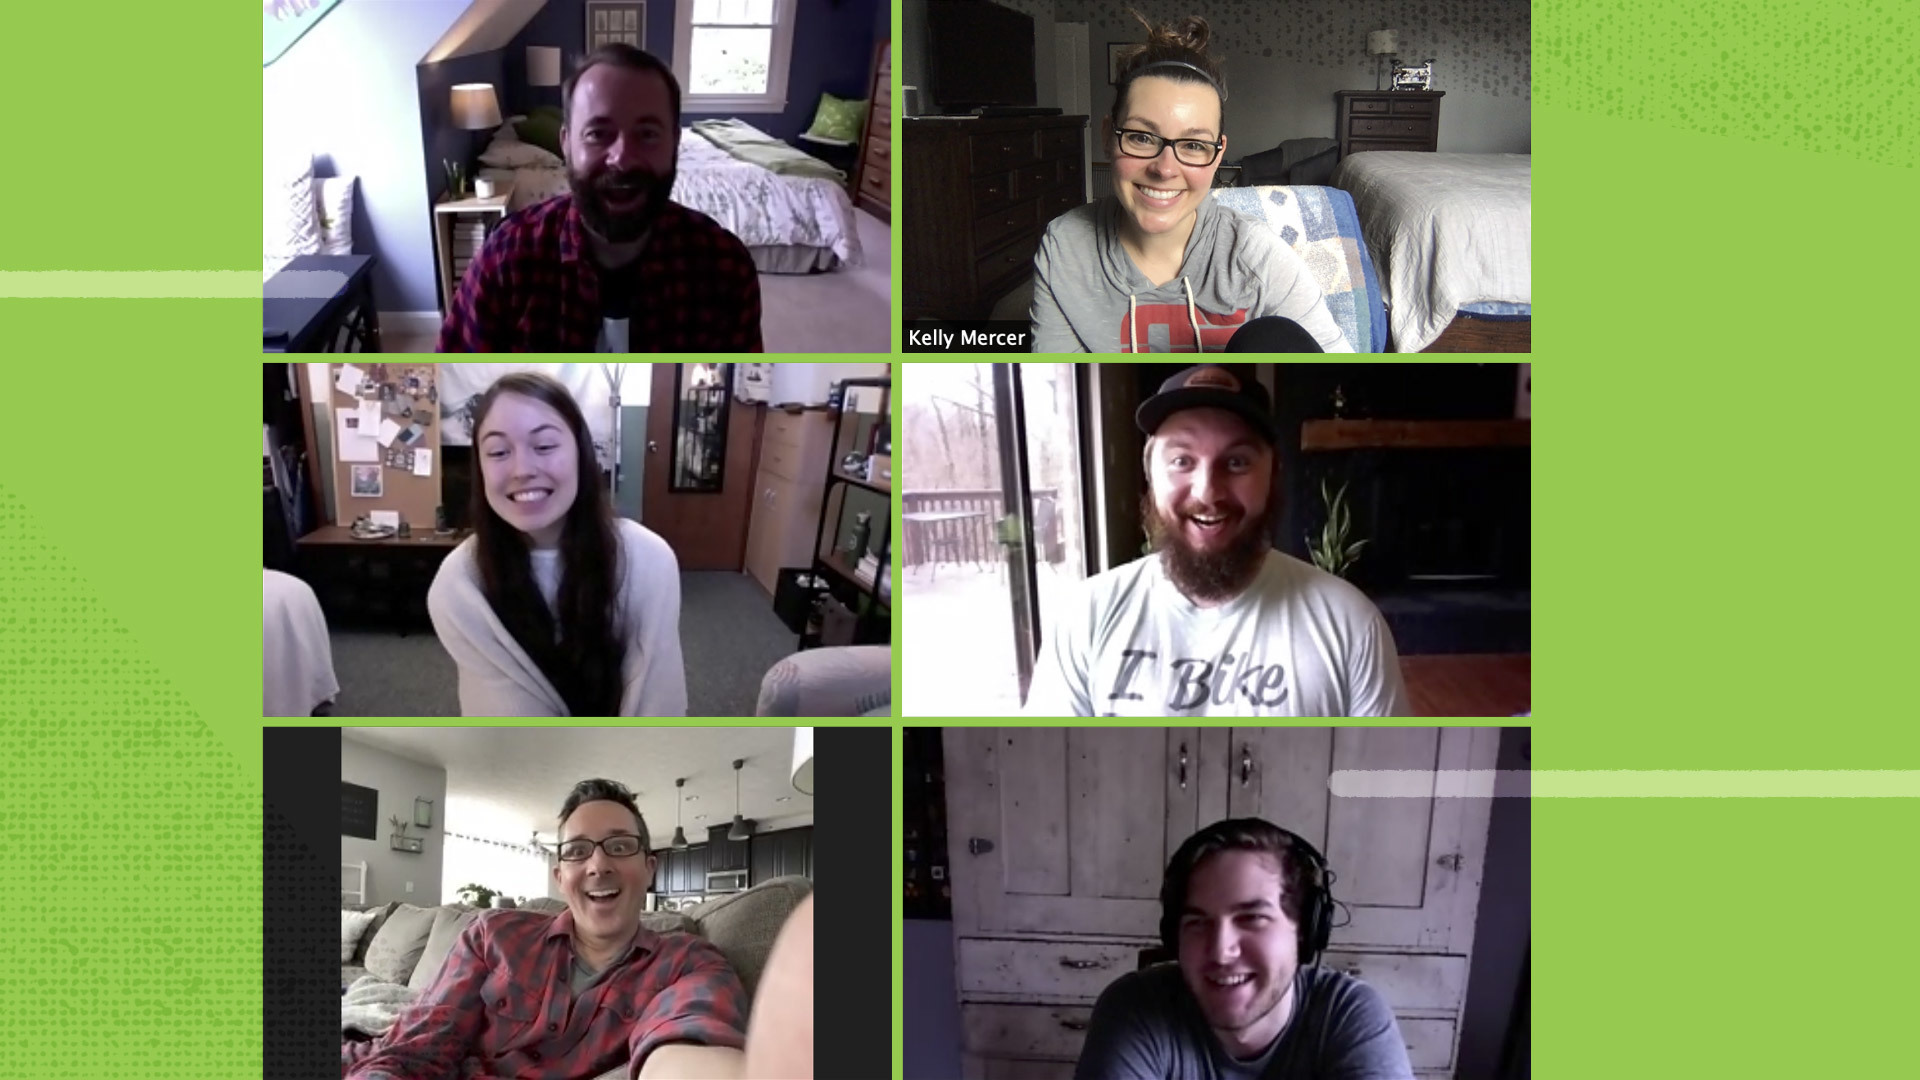 Boom Crate Team on a Zoom call.